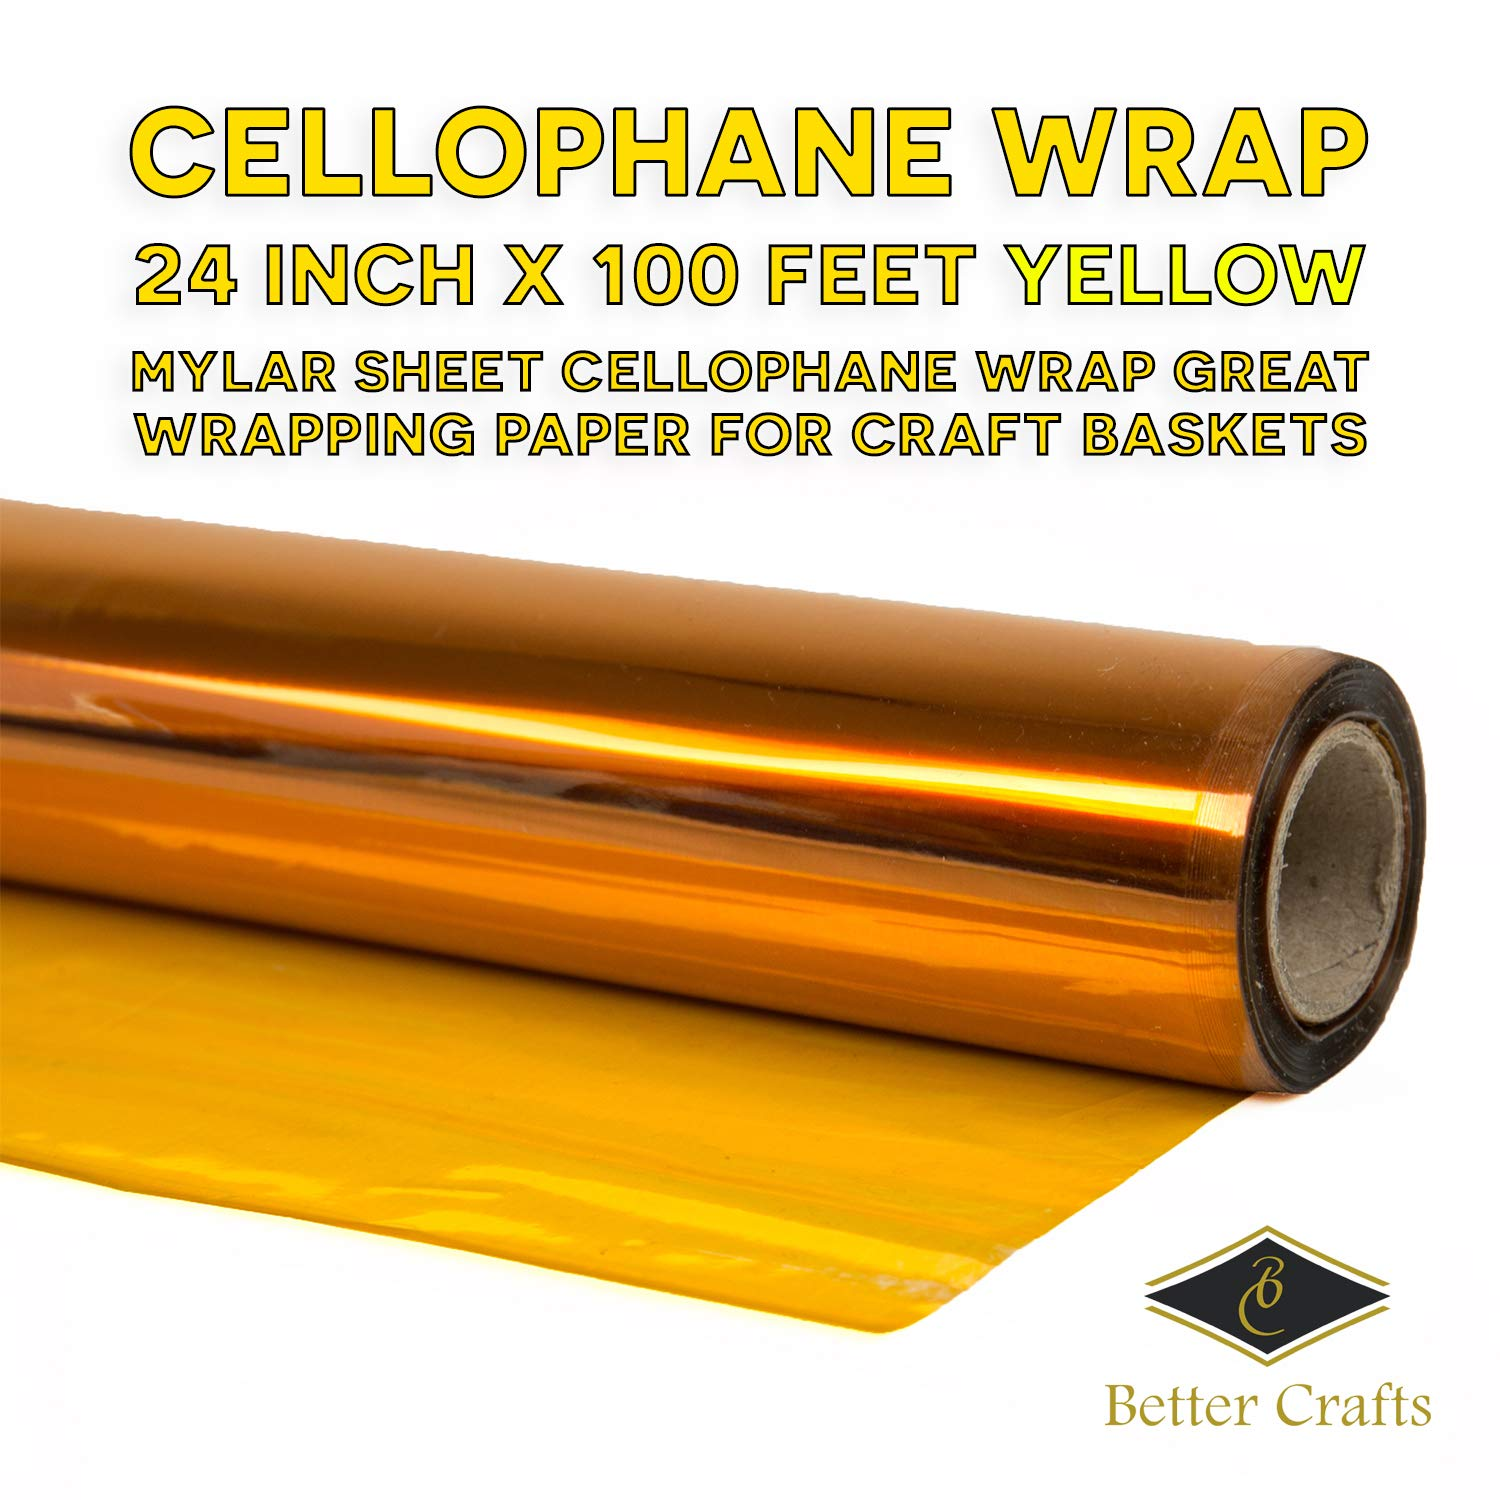 Cellophane Wrap 24 Inch X 100 Ft Yellow Mylar Sheet Cellophane Roll Great Wrapping Paper For